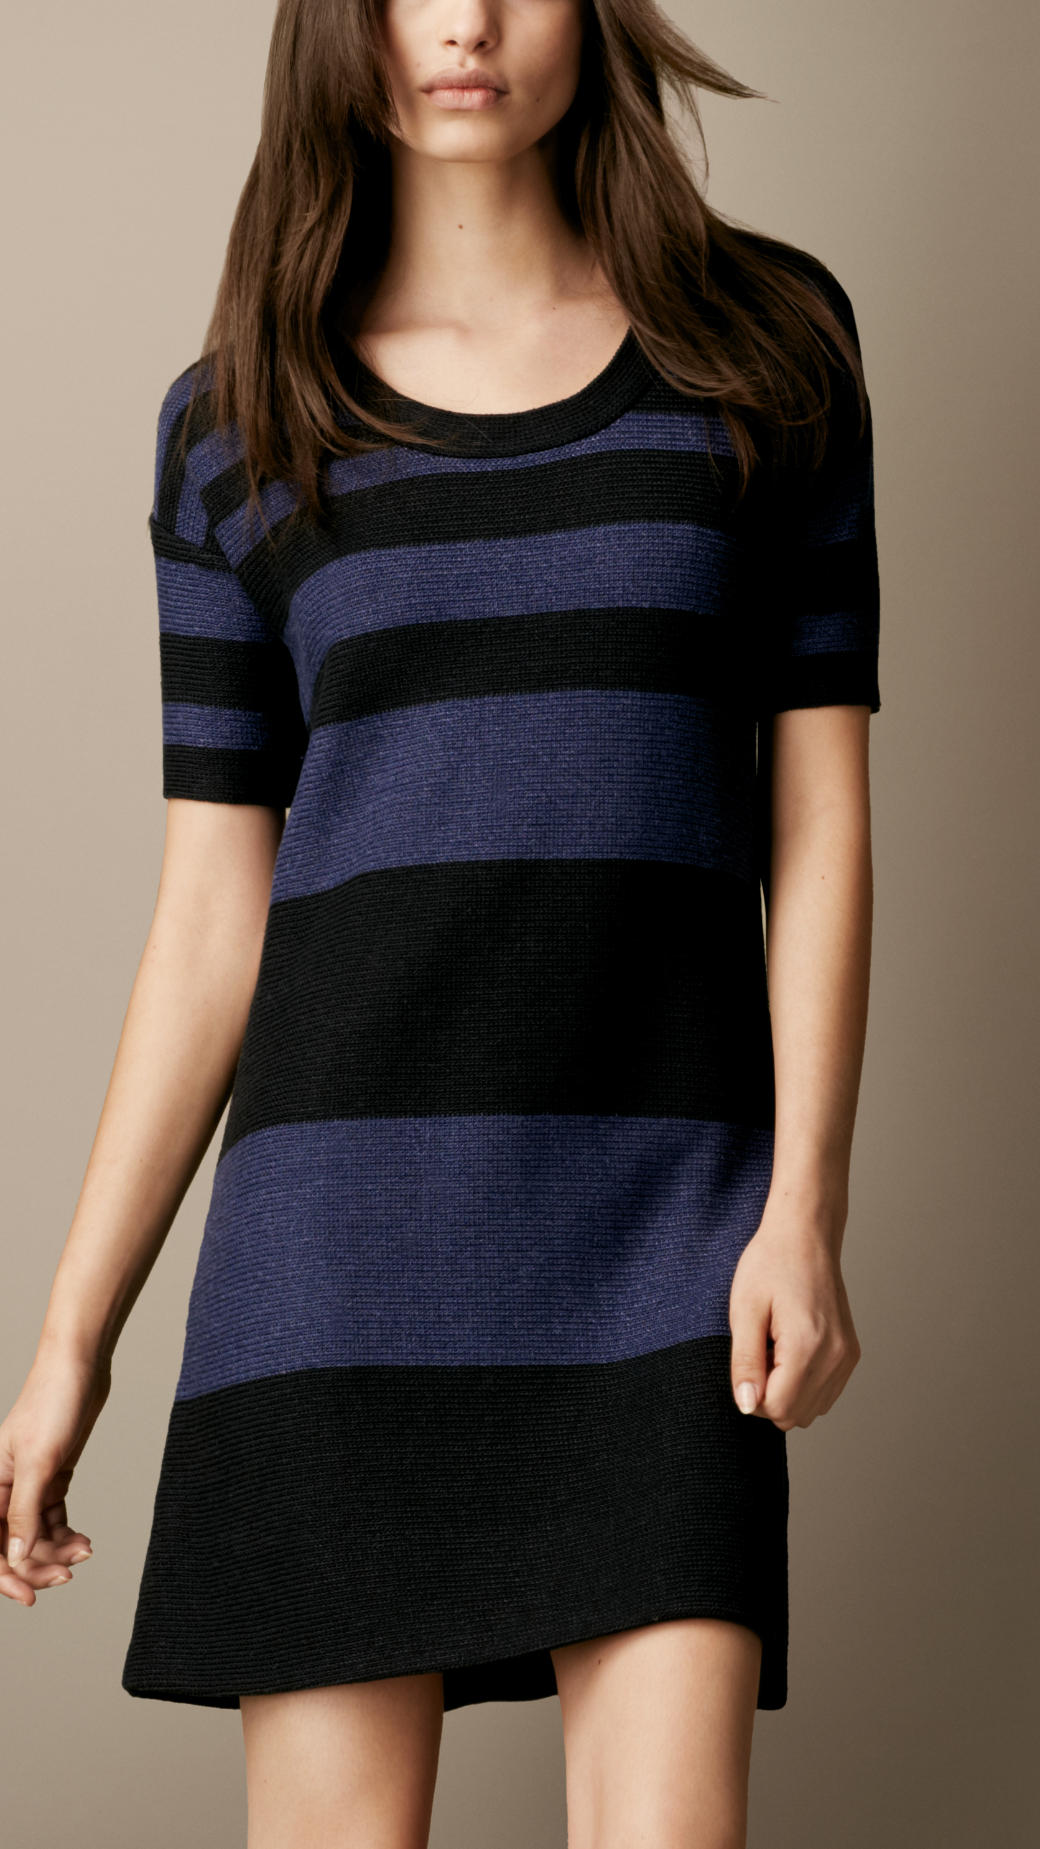 6102b52beb Lyst - Burberry Brit Cotton Linen Striped Dress in Blue